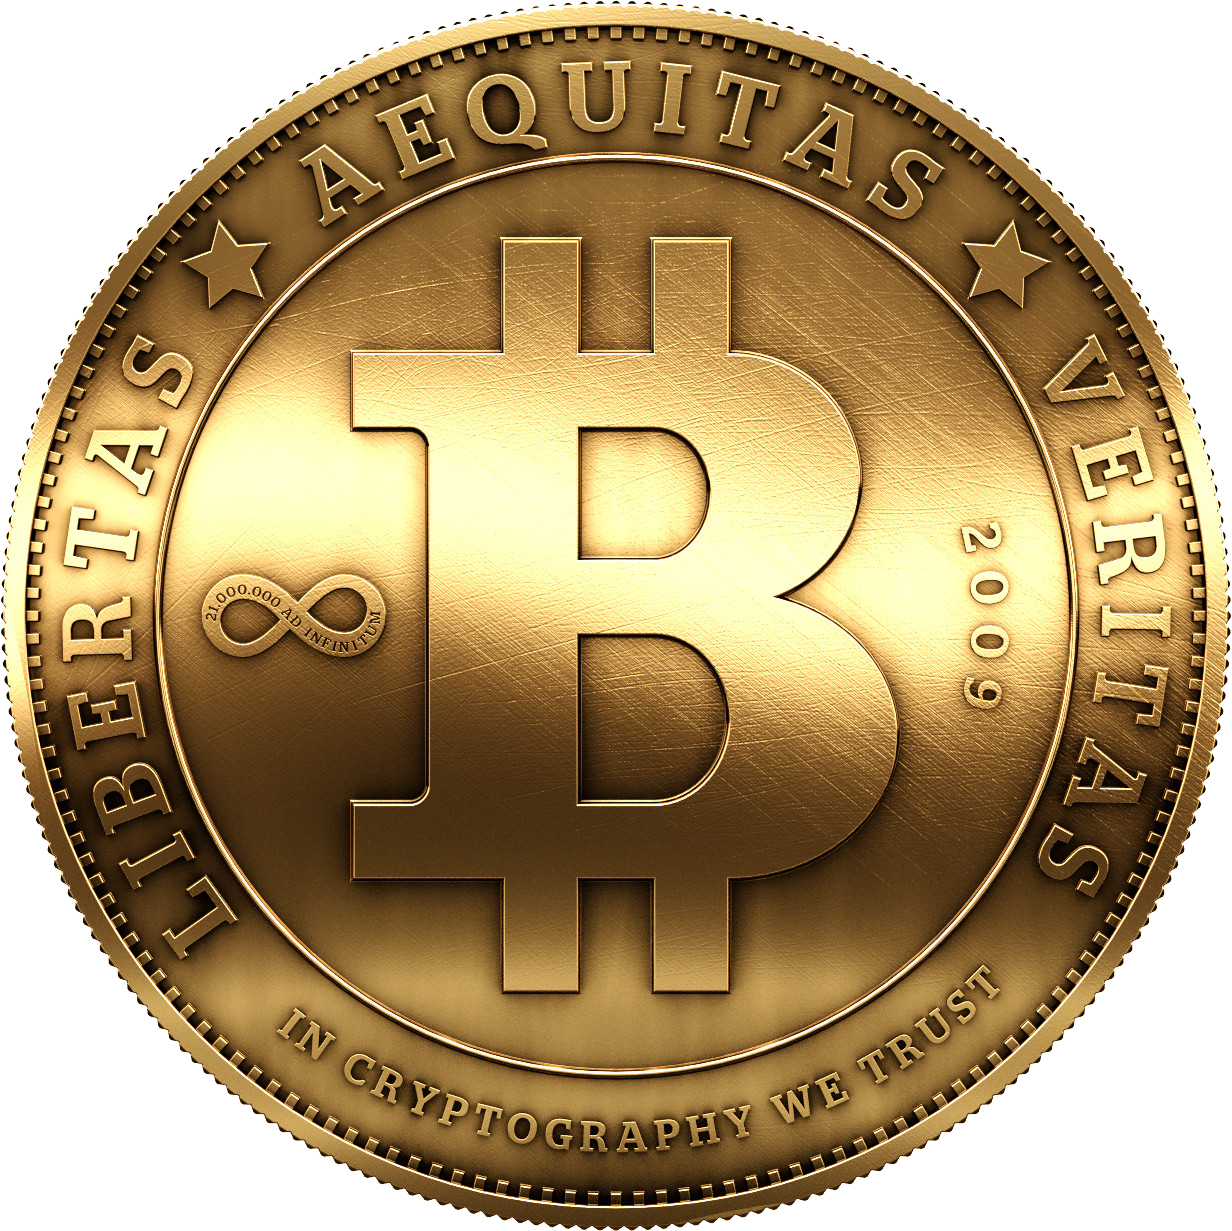 picture library stock Bitcoin transparent. Png images free download